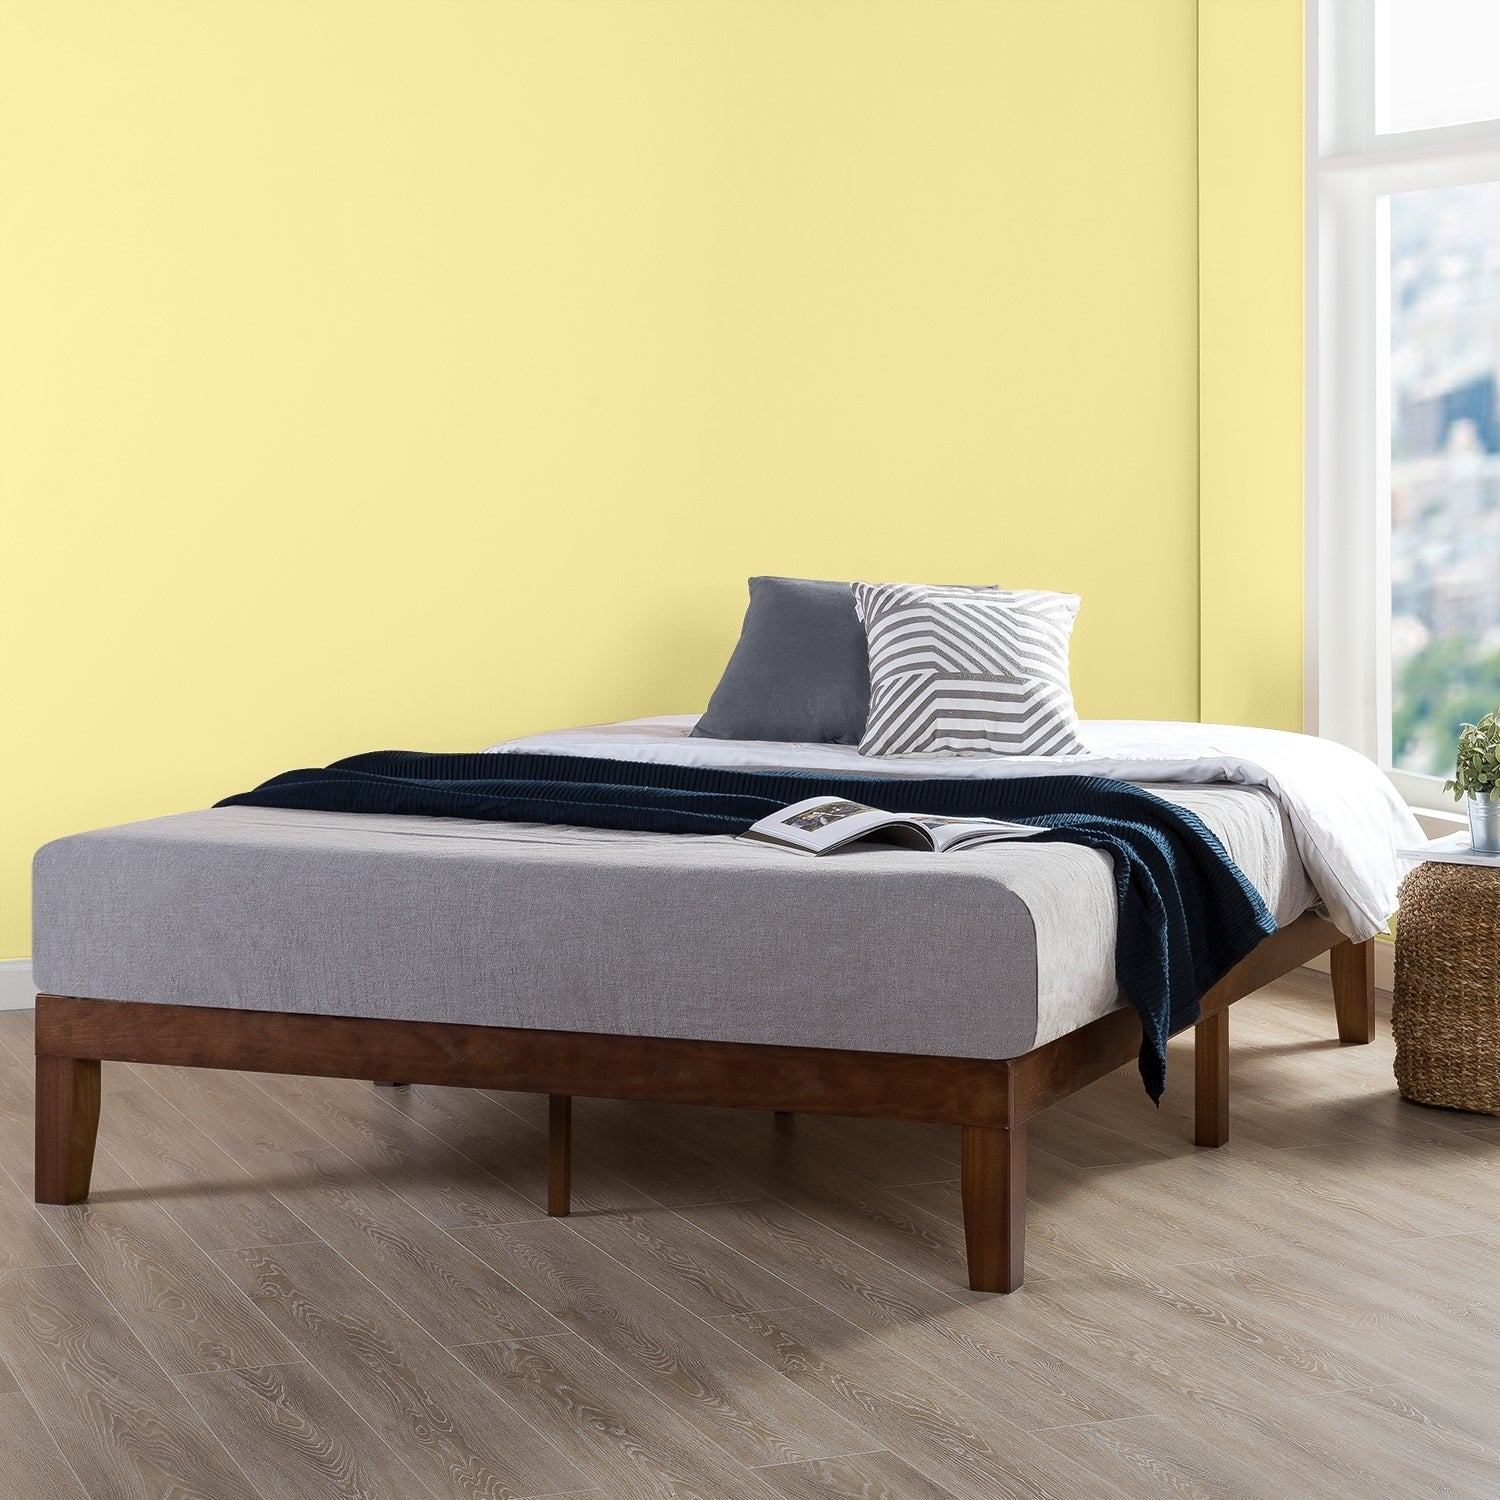 Picture of: Full Size 12 Inch Classic Solid Wood Platform Bed Frame Antique Espresso Crown Comfort Overstock 22378115